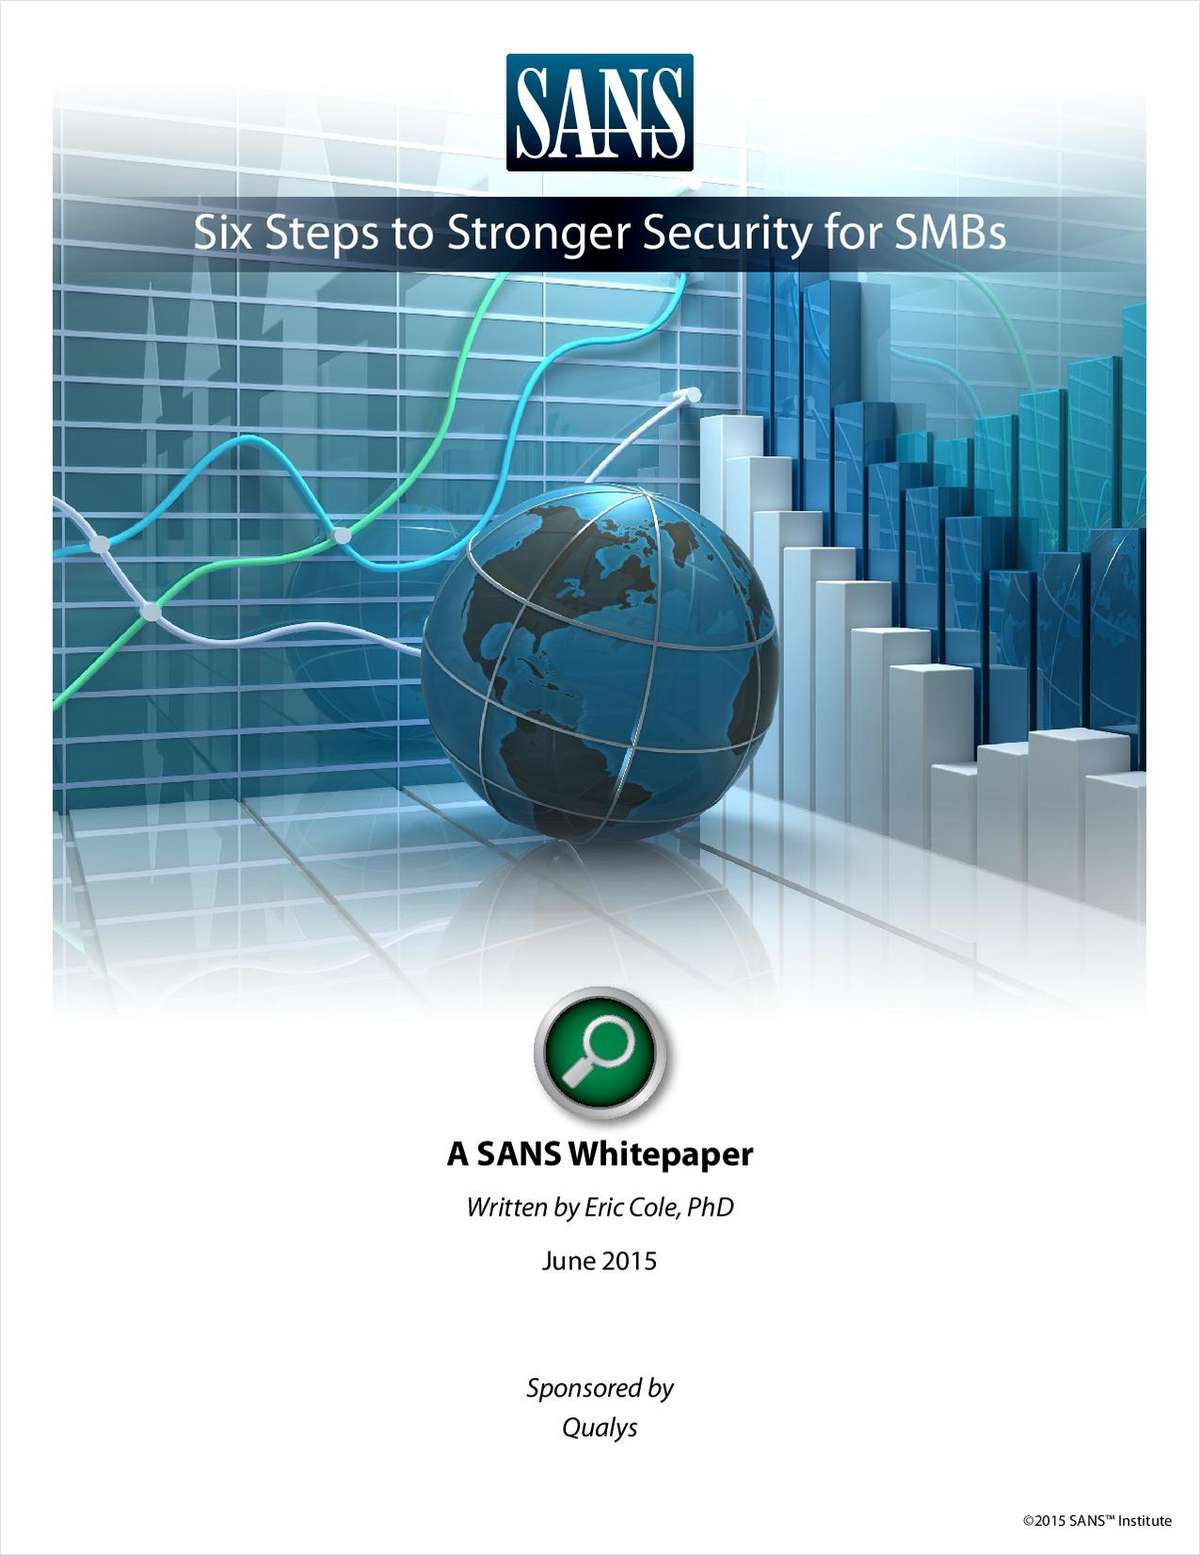 Six Steps to Strong Security for SMBs